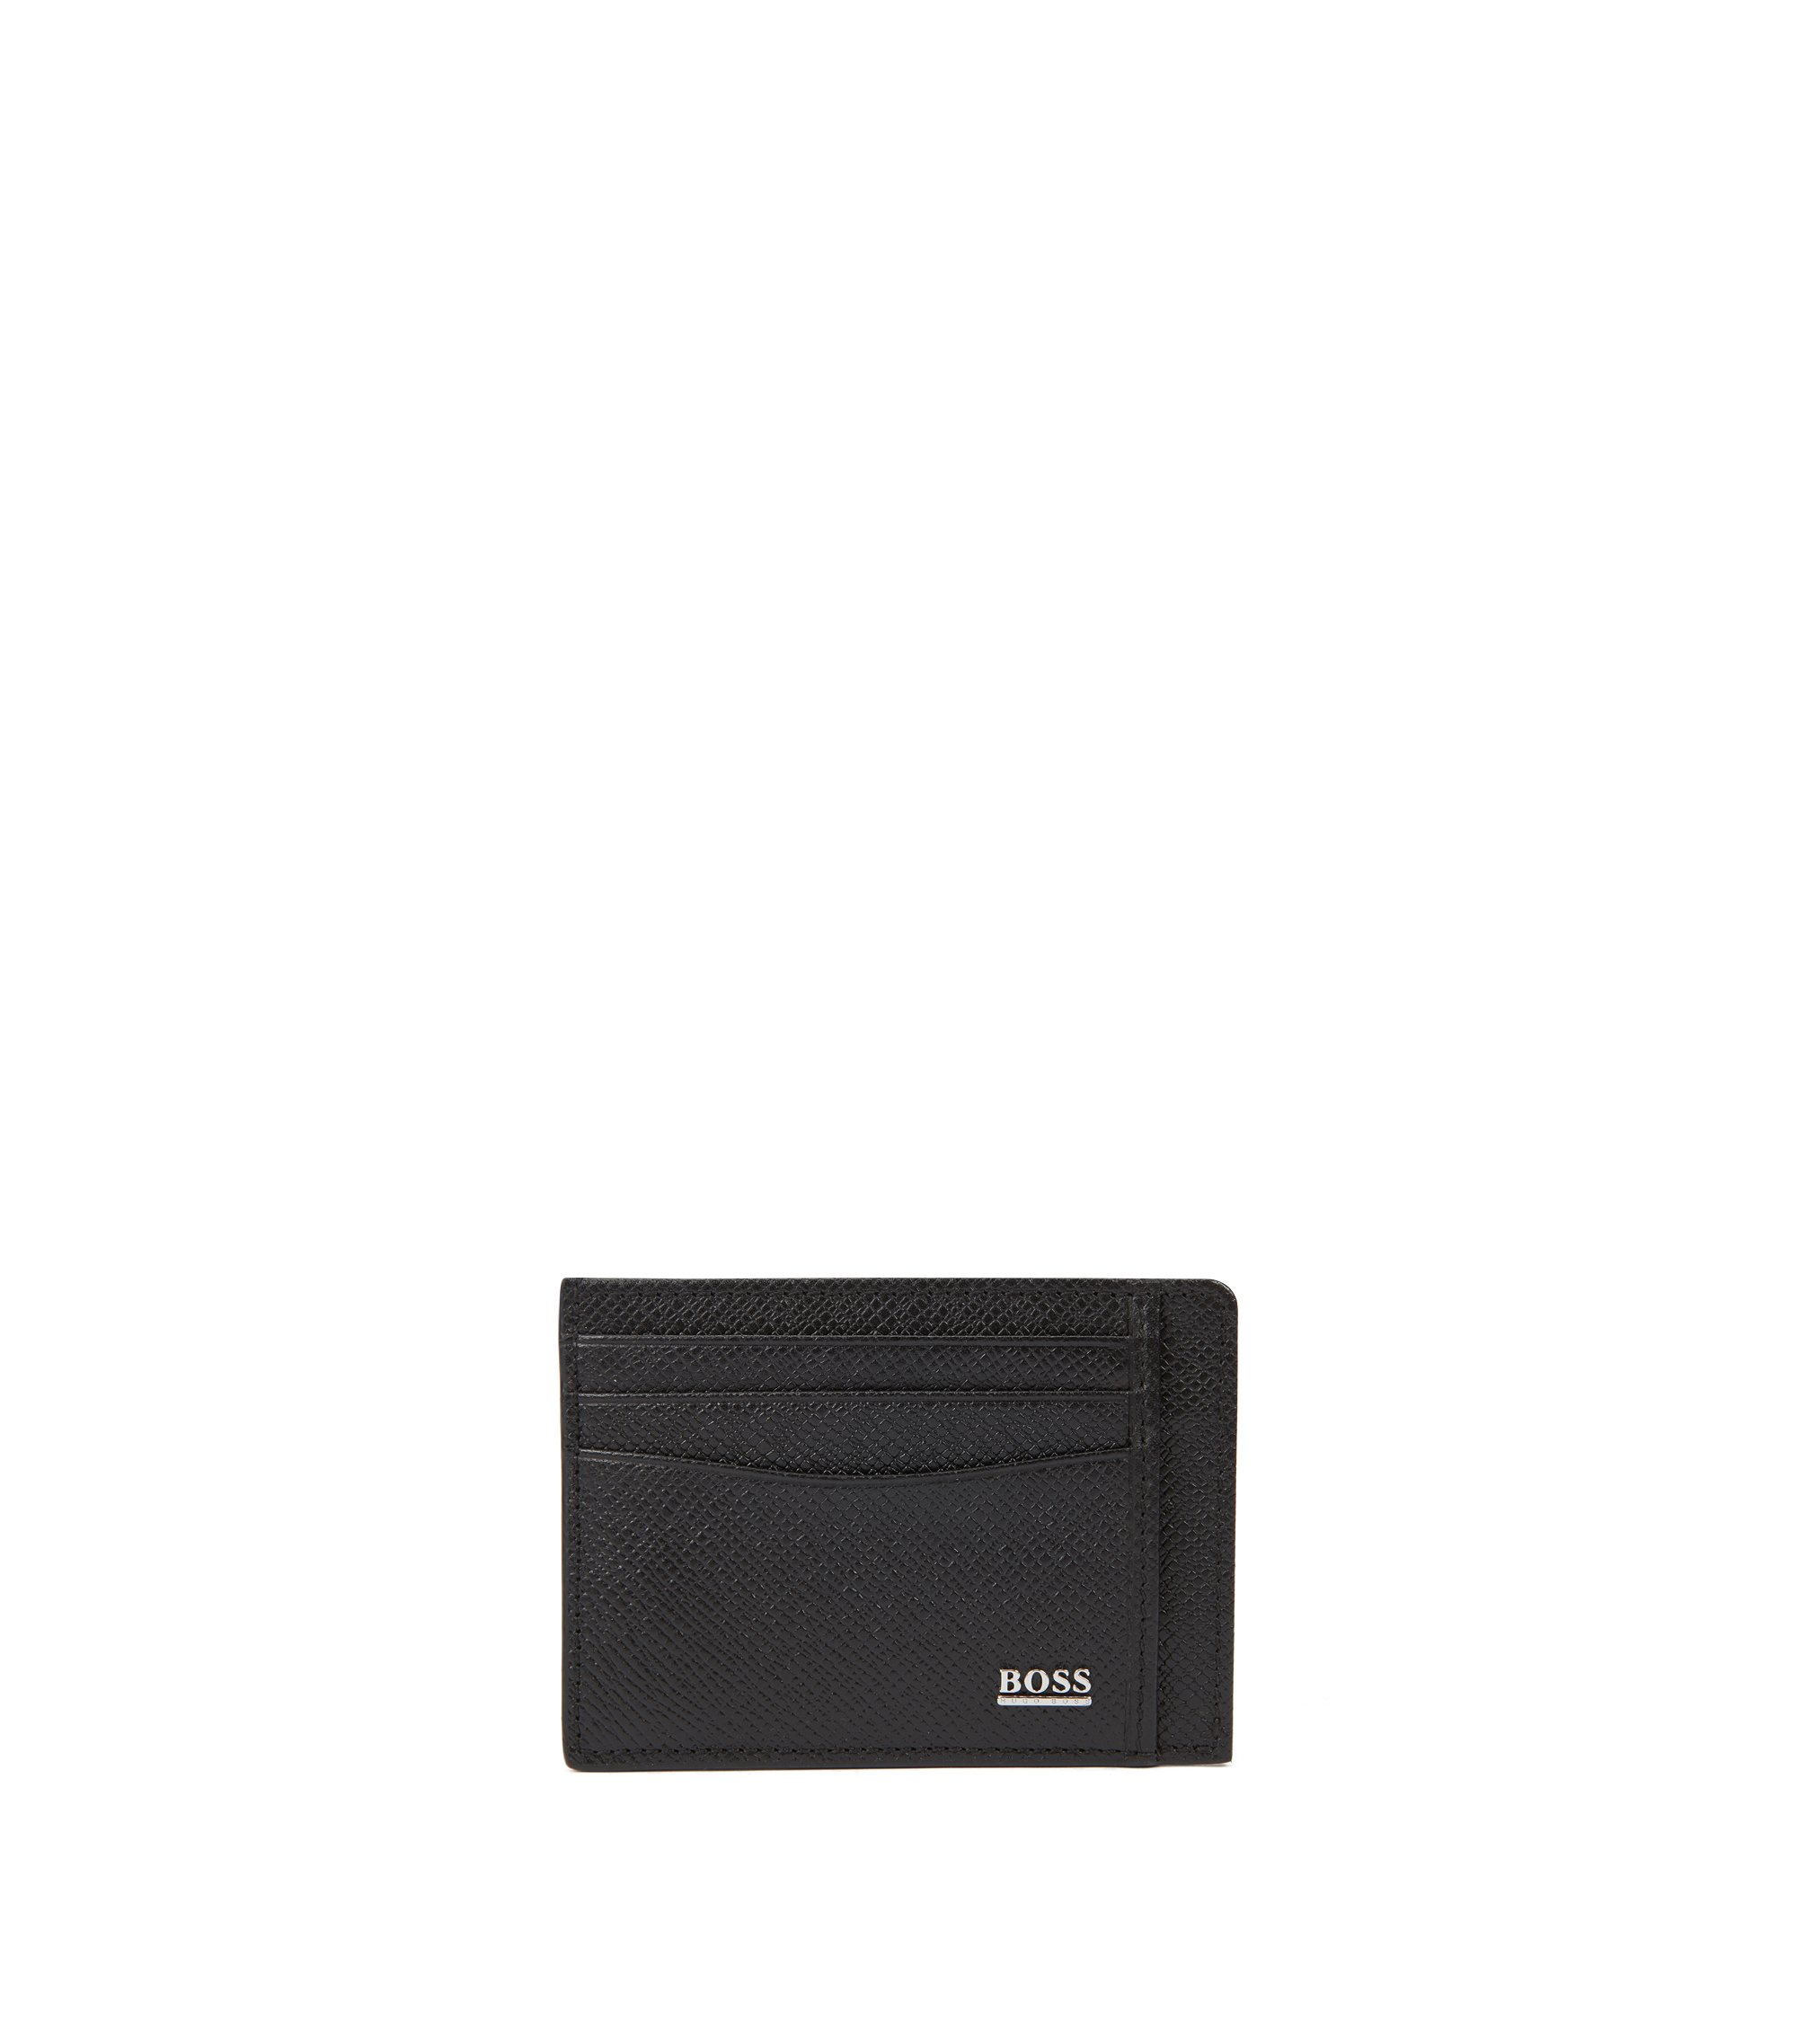 Porte-cartes Signature Collection en cuir palmellato imprimé, Noir